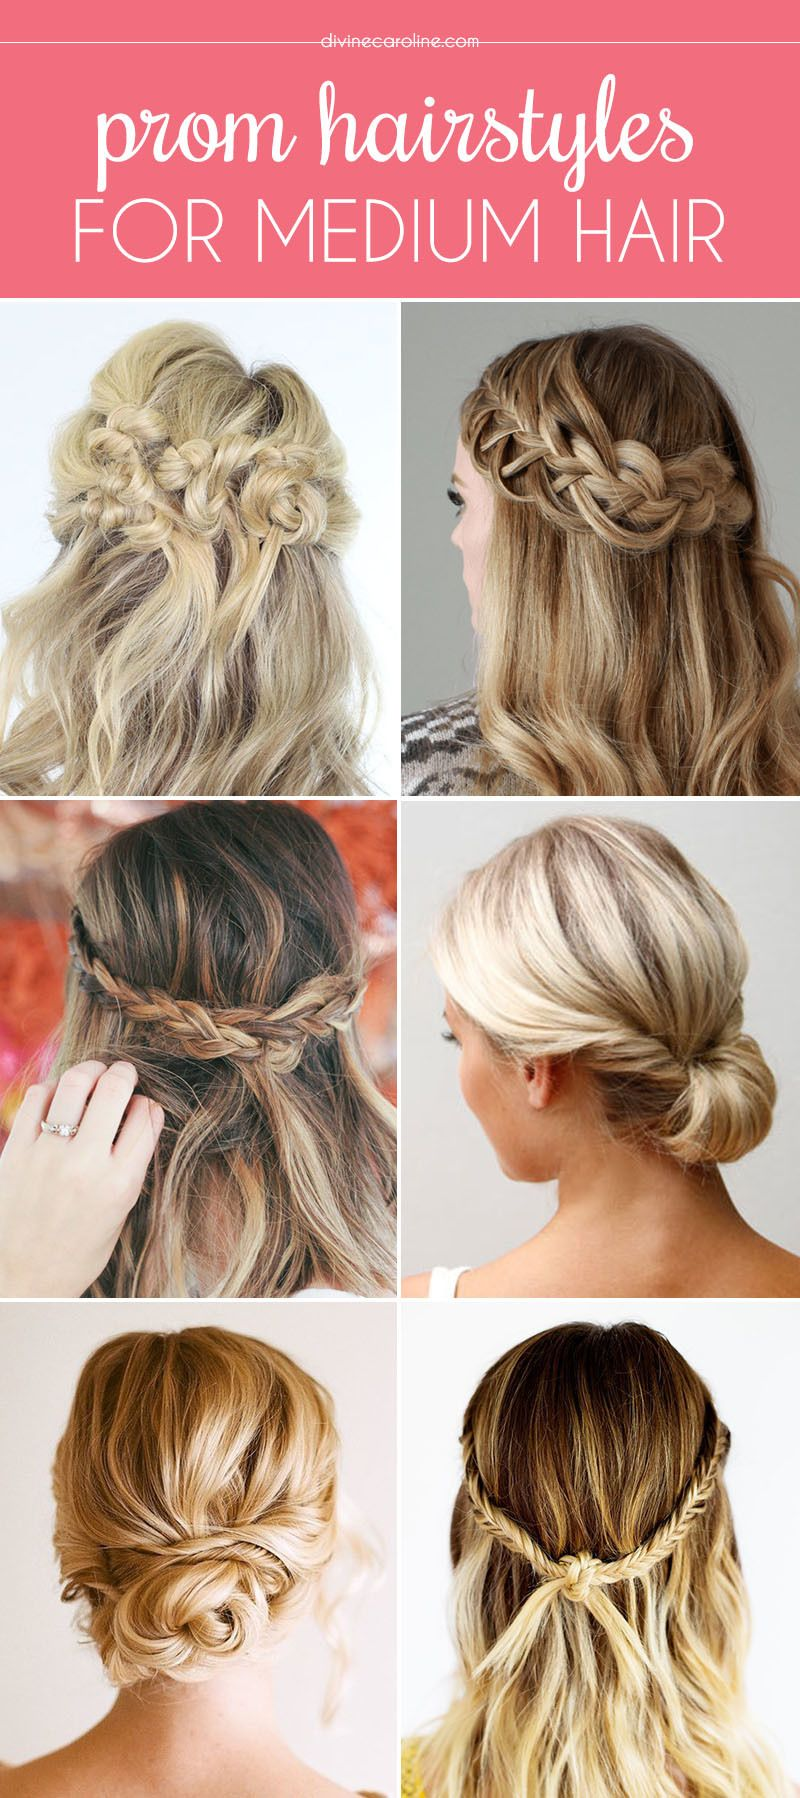 French Hairstyles Adorable Our Favorite Prom Hairstyles For Mediumlength Hair  French Braid